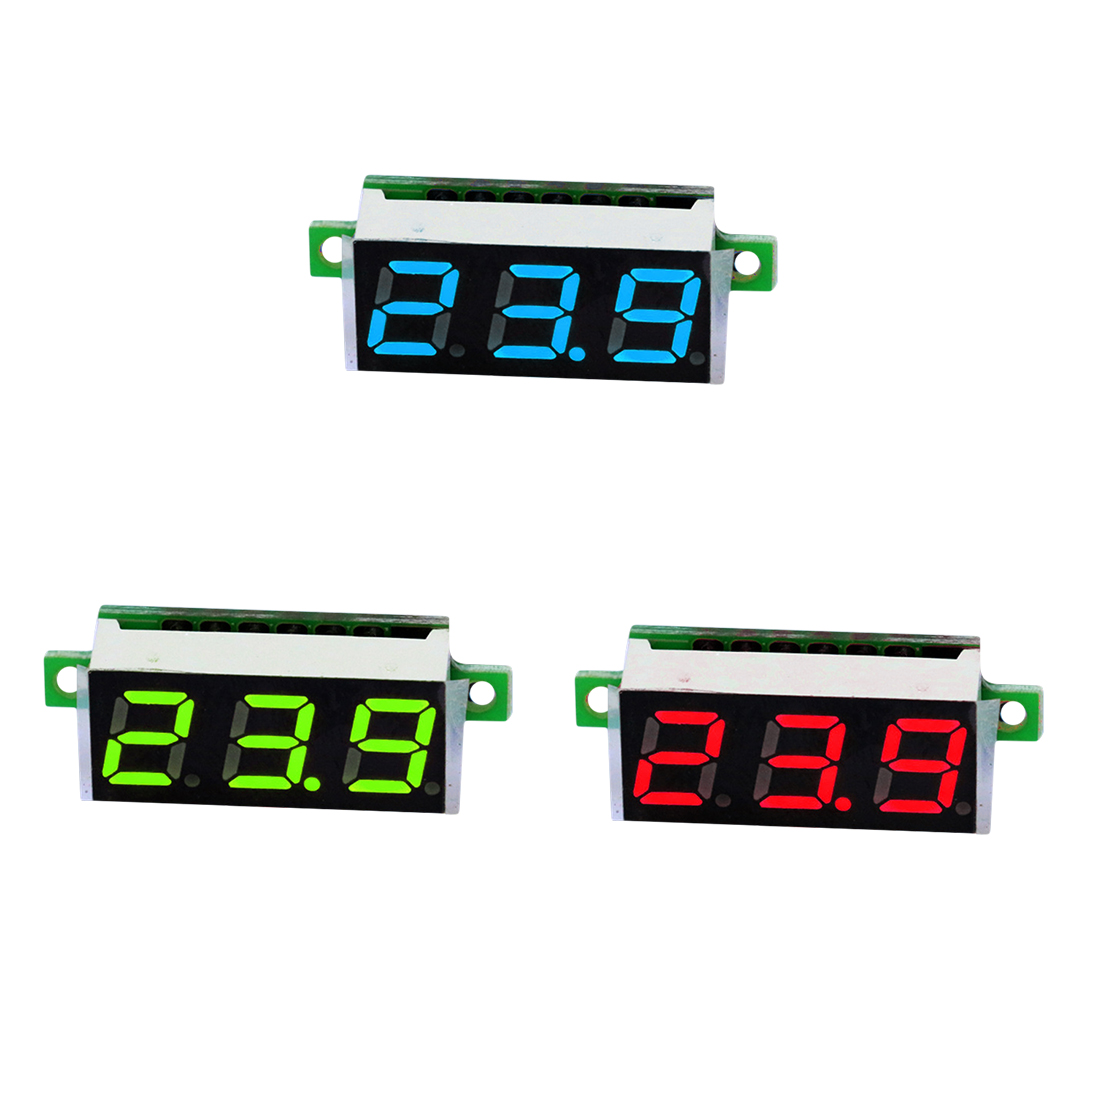 Mini Digital Voltmeter 0.28 Inch 2.5V-30V Voltage Tester Meter LED Screen Electronic Parts Accessories Digital Voltmeter mini voltmeter tester digital voltage test battery dc 0 30v red blue green auto car